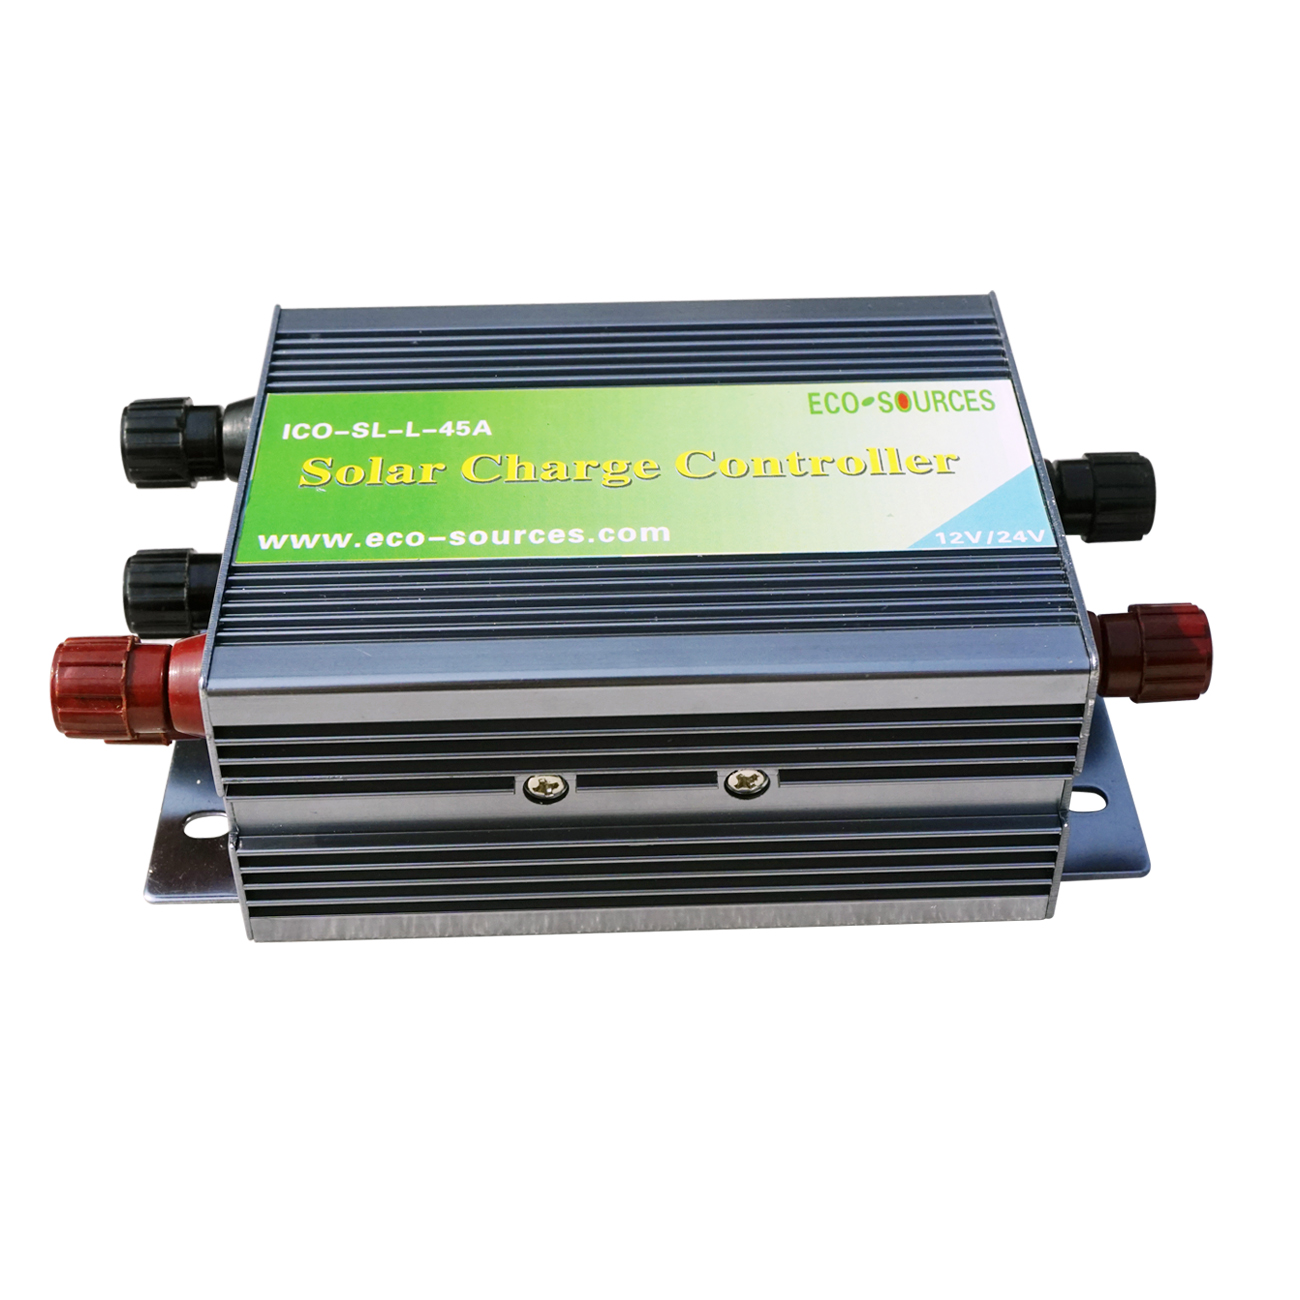 45A PWM Solar panel controller Solar Charge Controller Regulator 12V/24V Battery Charging for 1kw solar system